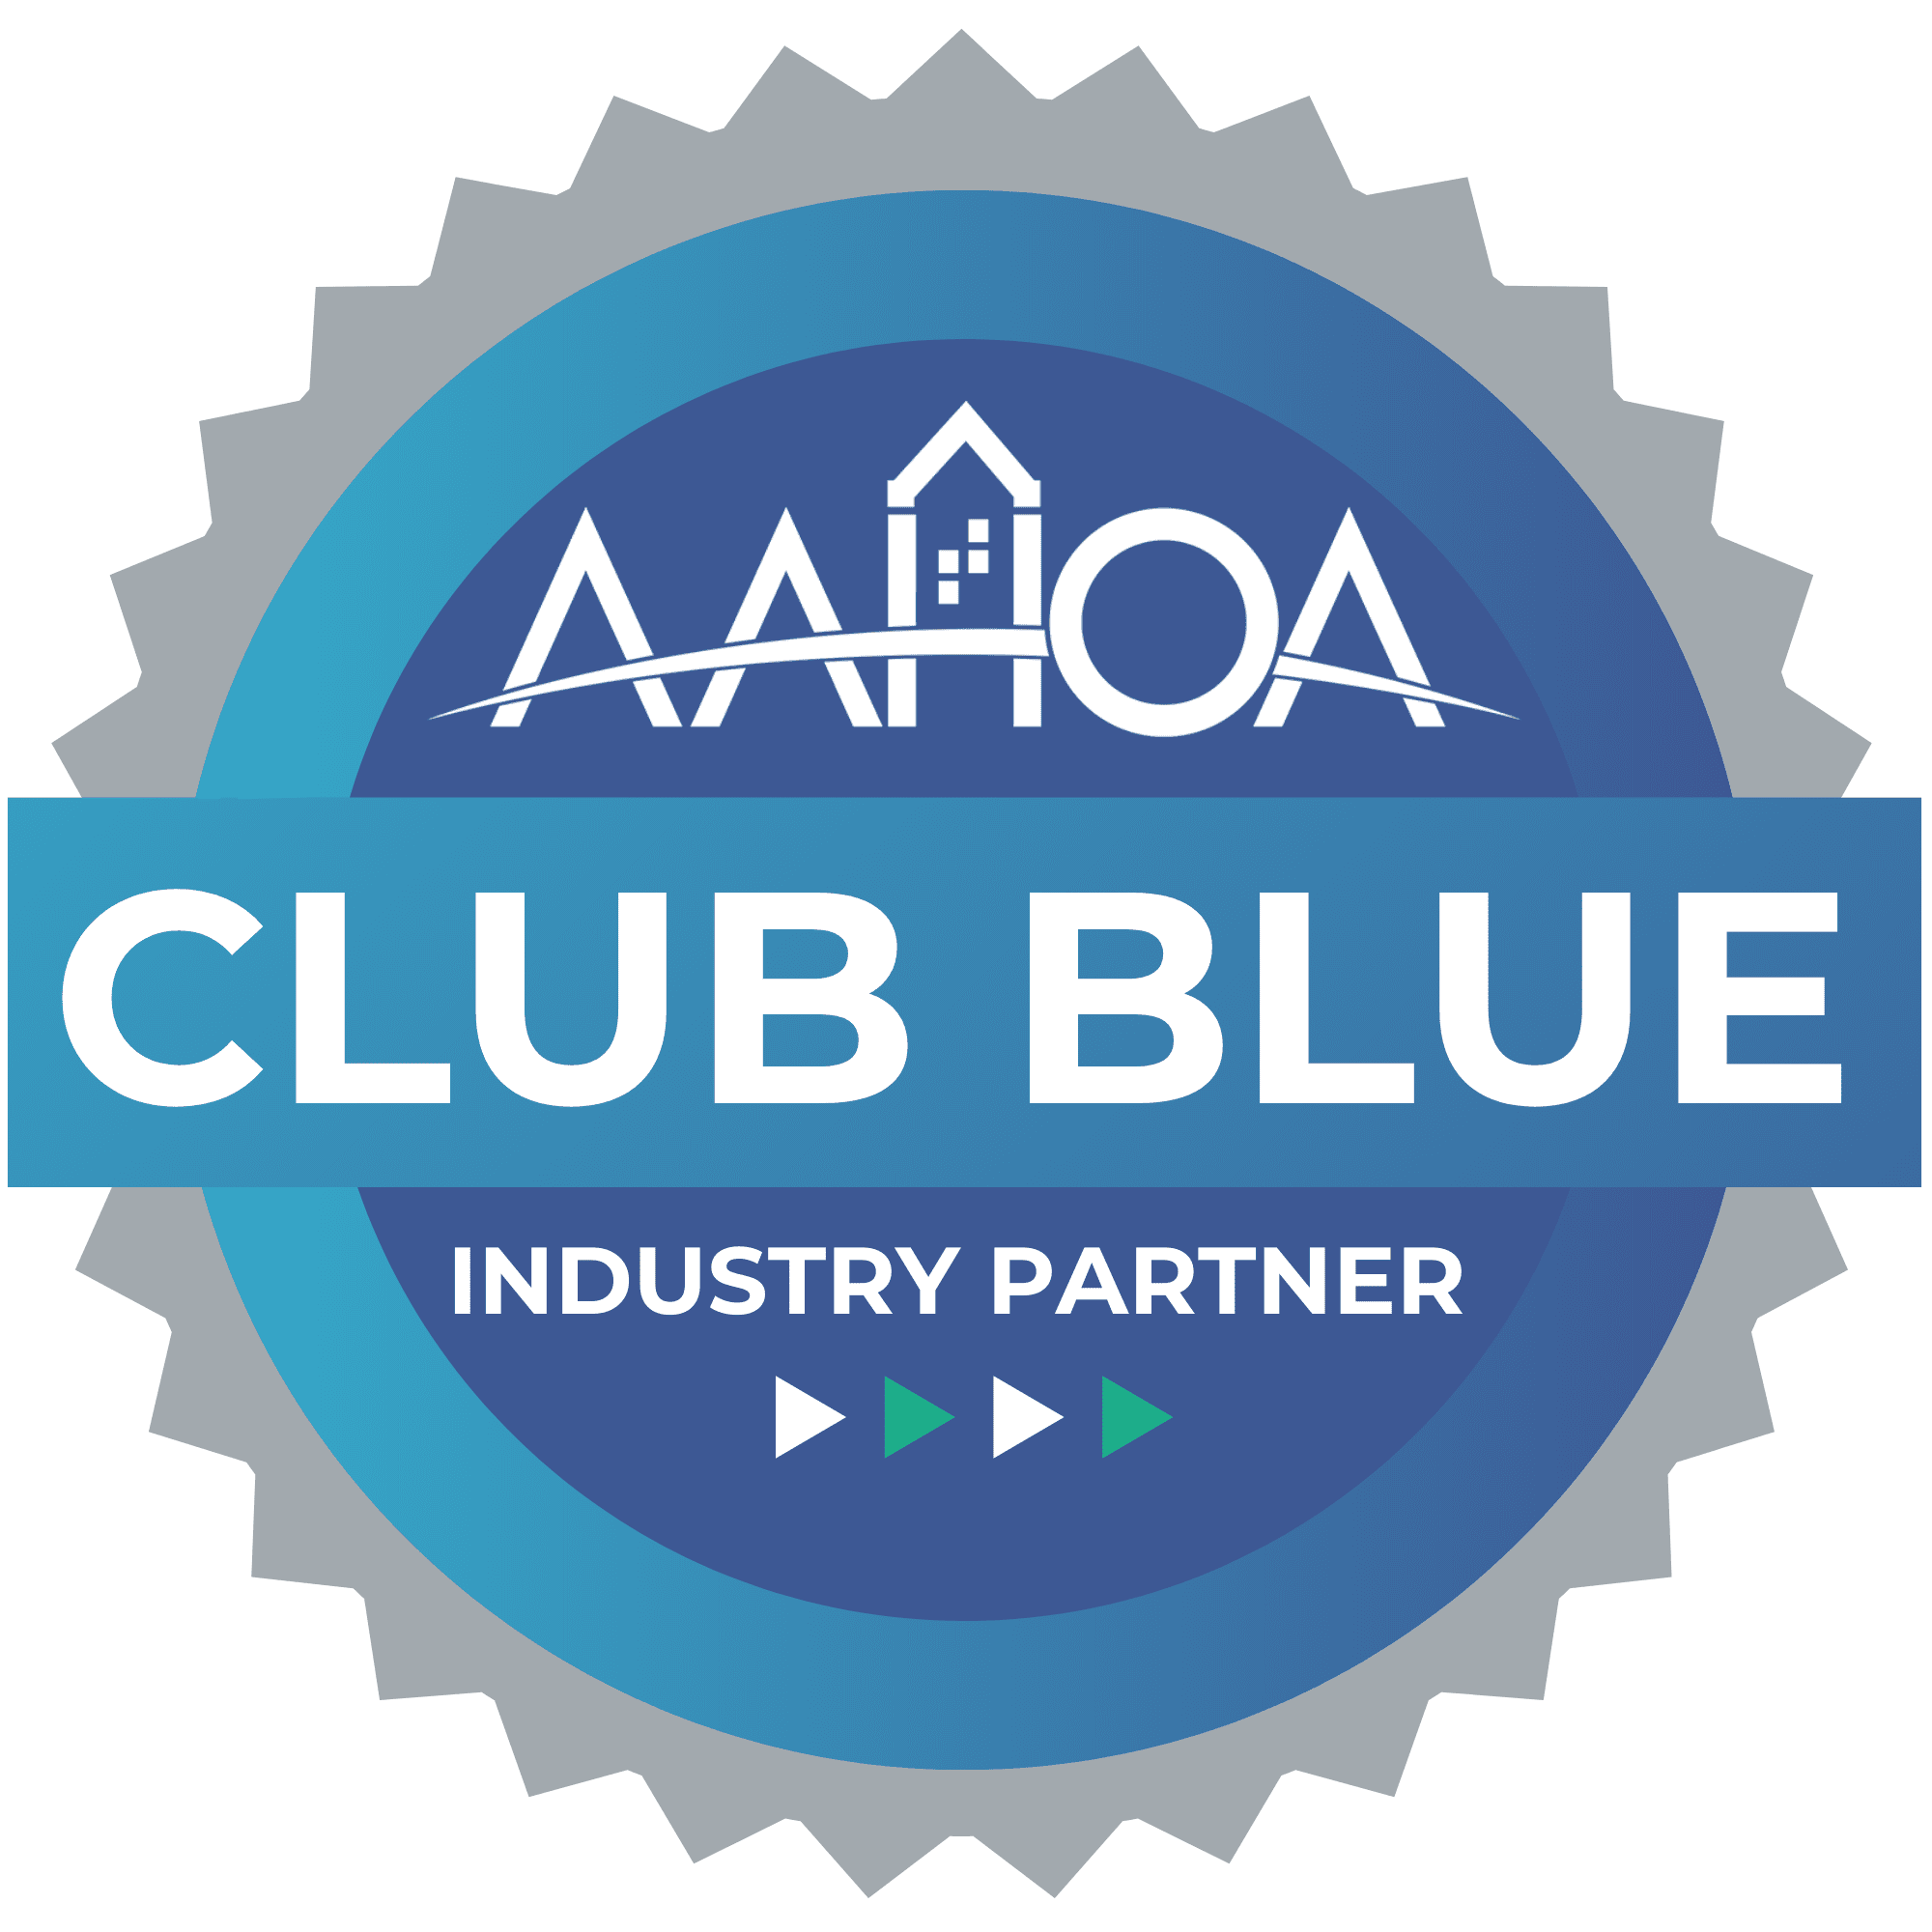 AAHOA Club Blue Industry Partner